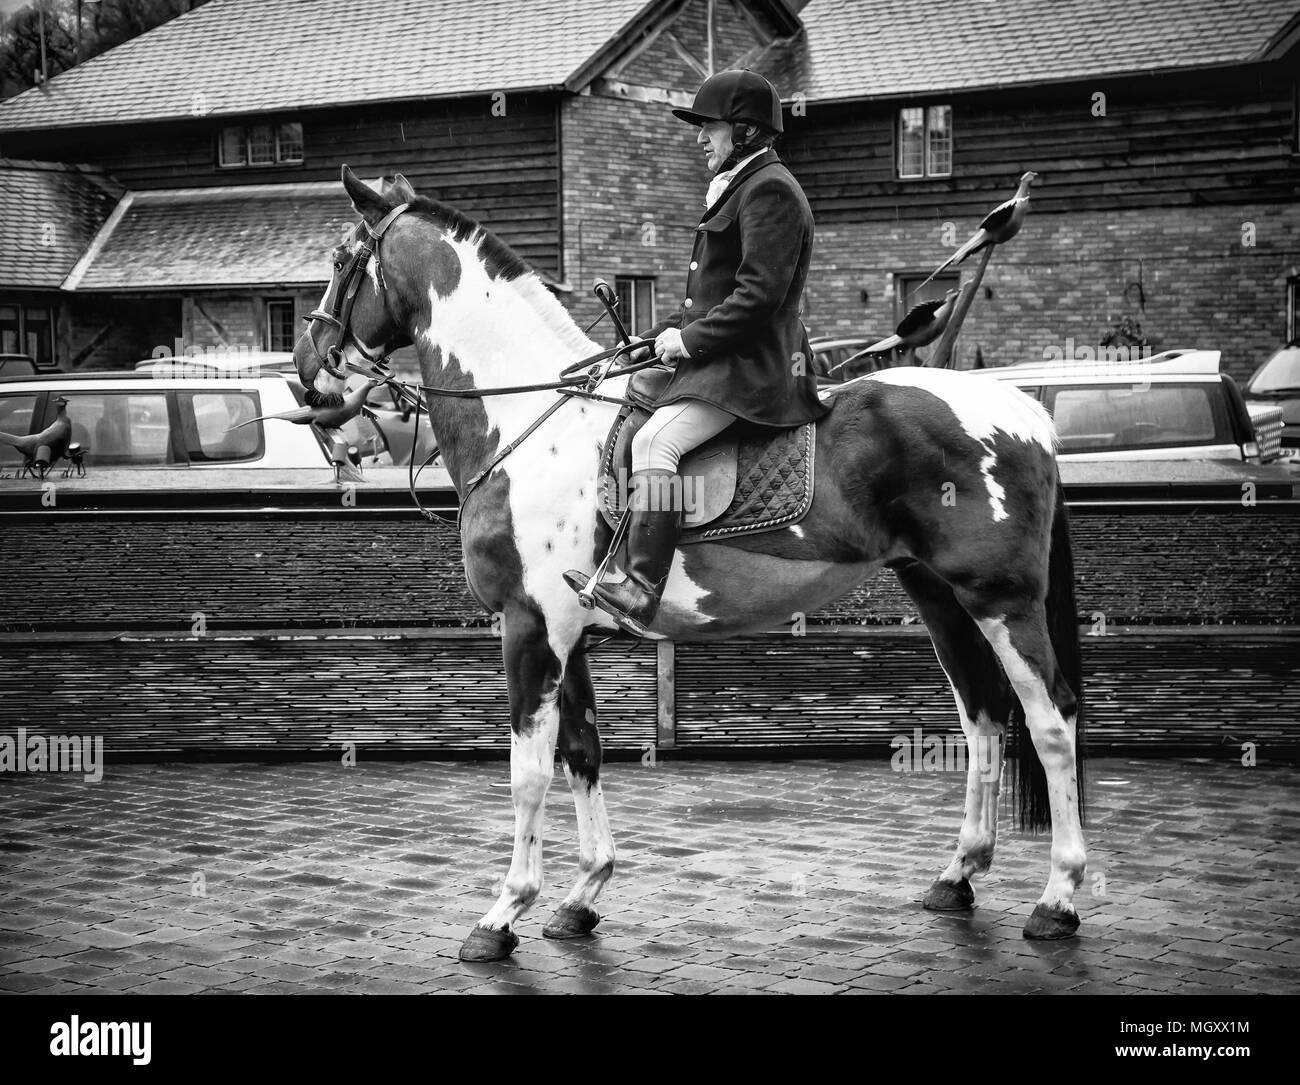 people riding horses - Stock Image